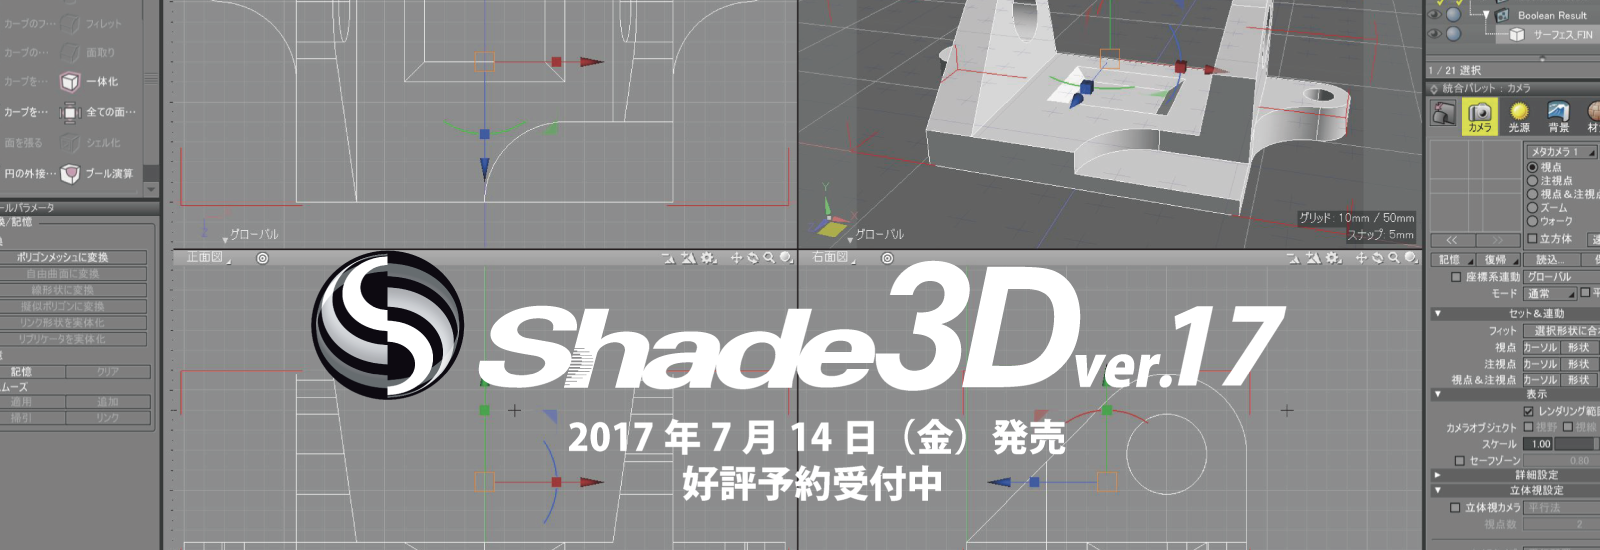 Top Shade3D ver.17 release